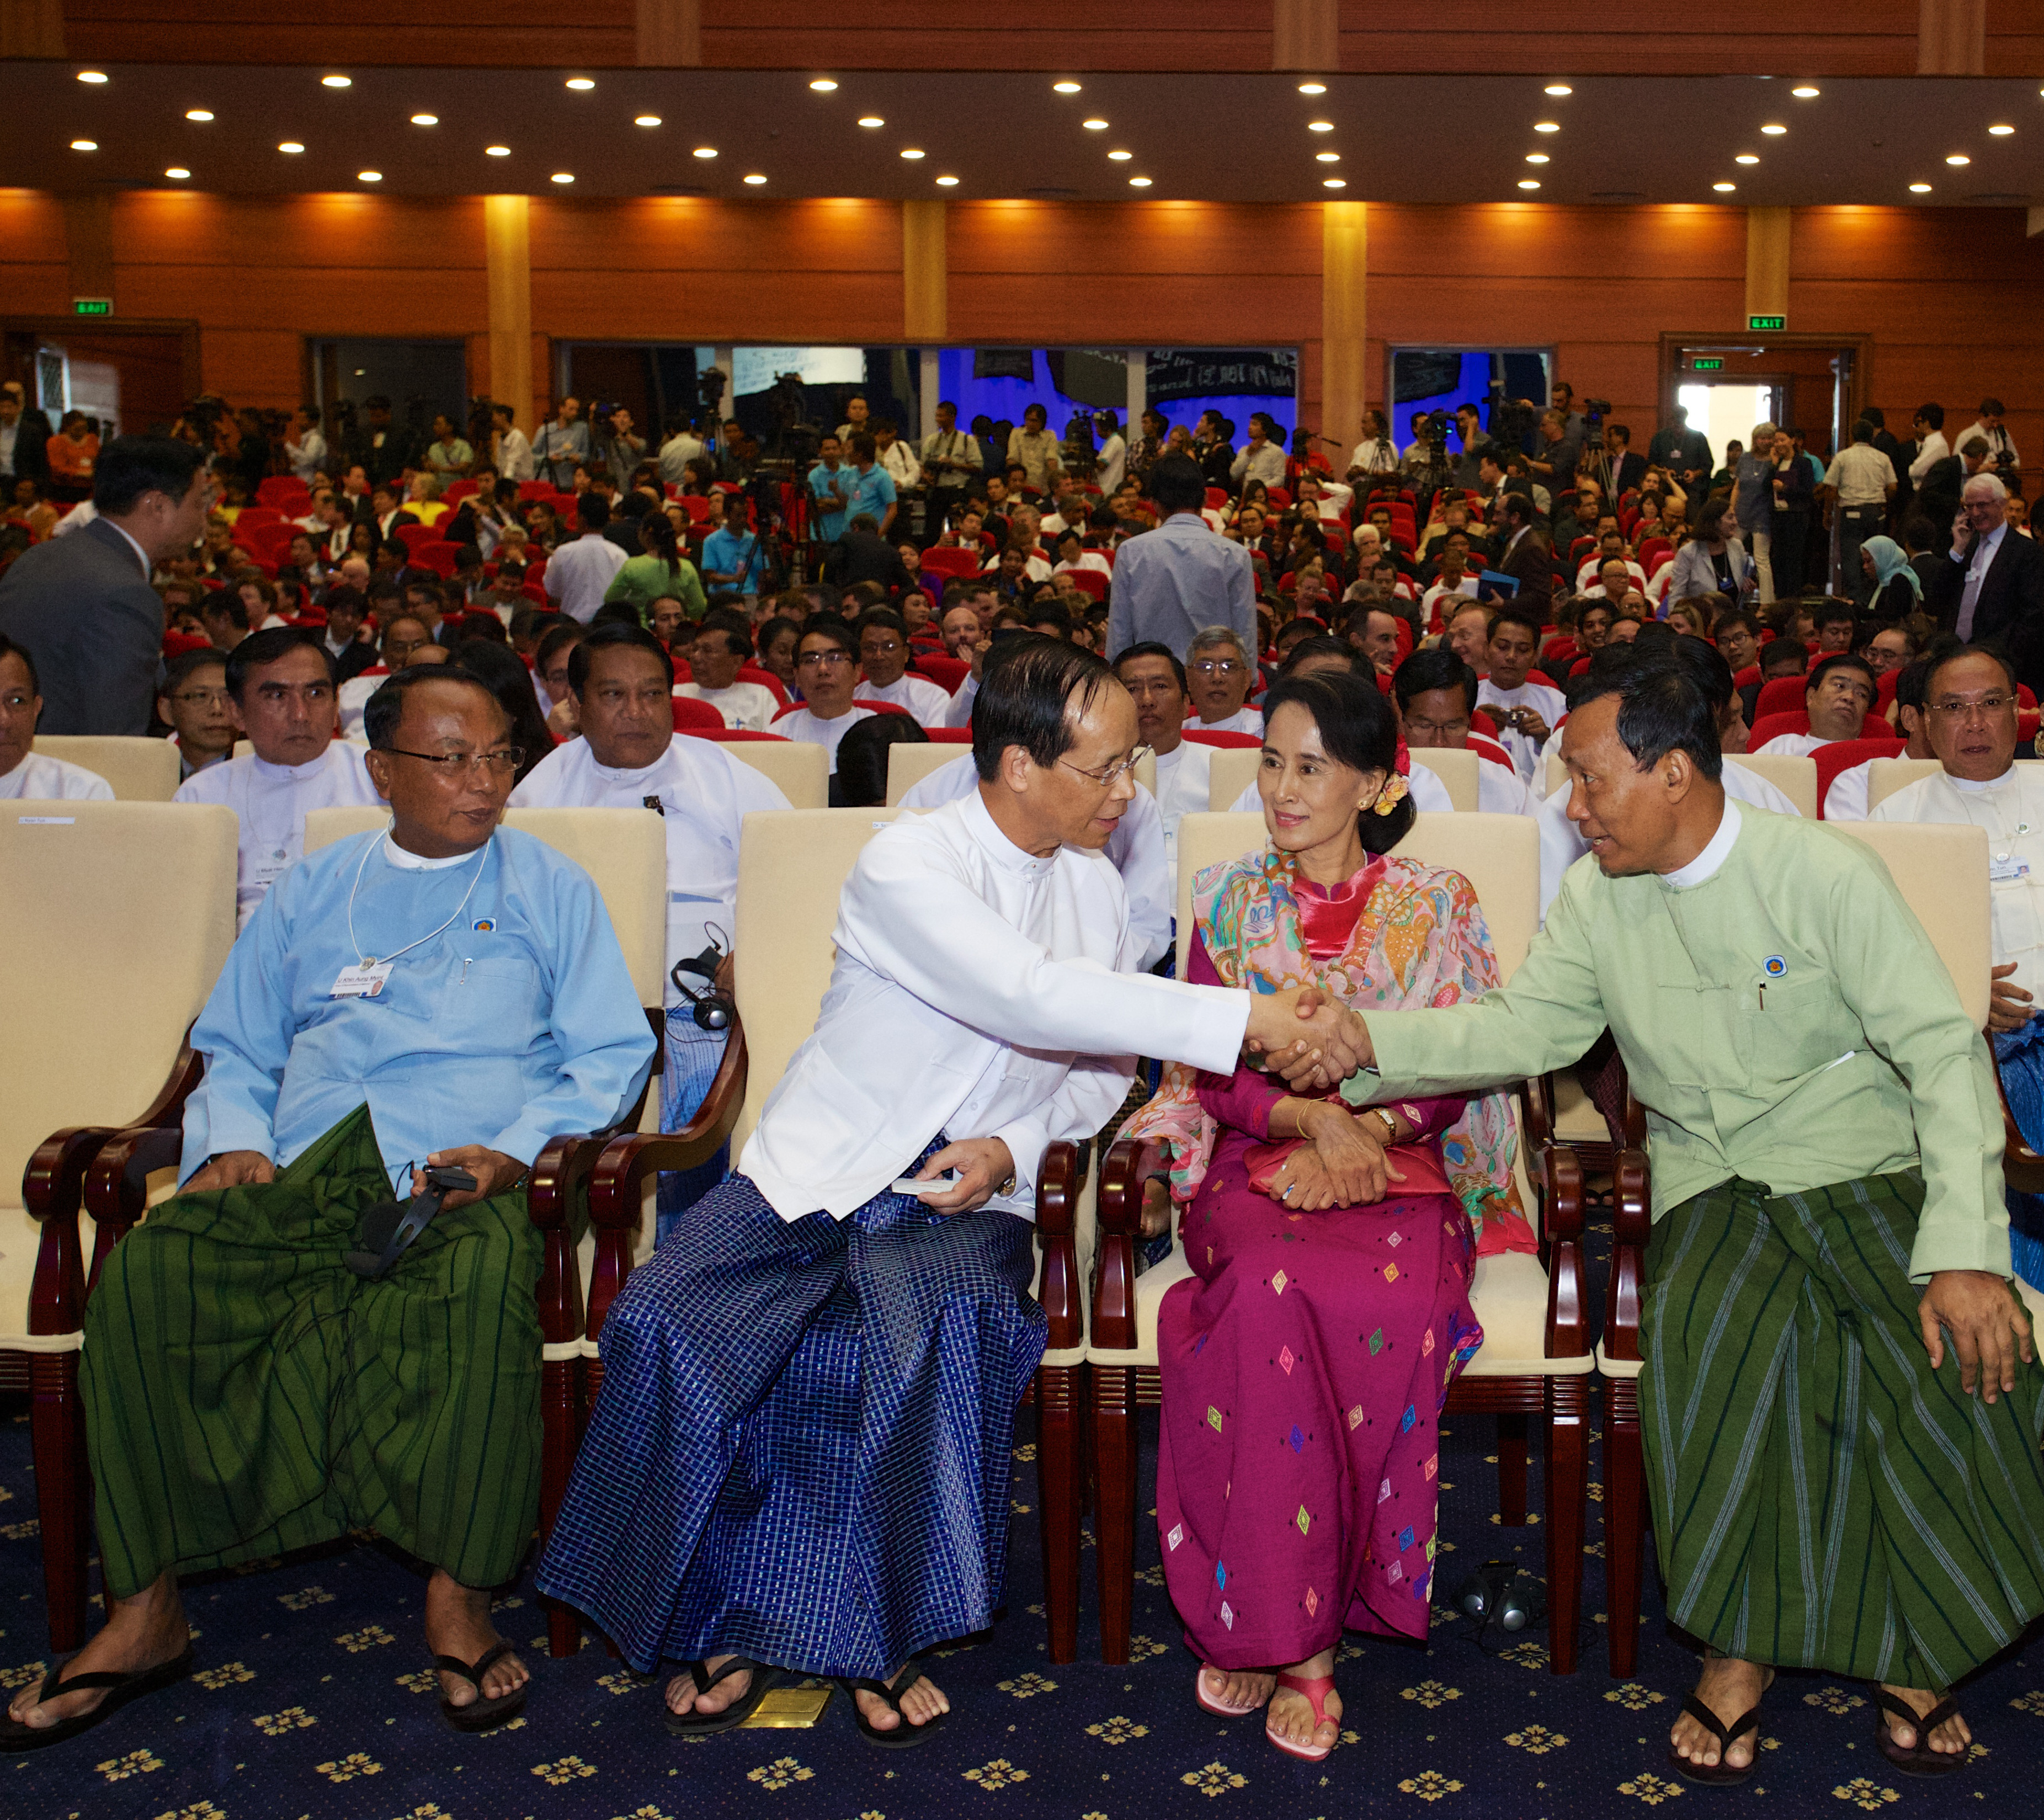 U Khin Aung Myint, Speaker of the House of Representatives, Sai Mauk Kham, Vice President, Aung San Suu Kyi, Chairwoman, National League for Democracy and Shwe Mann, Member of Parliament, Myanmar greeting each other before the Opening Ceremony